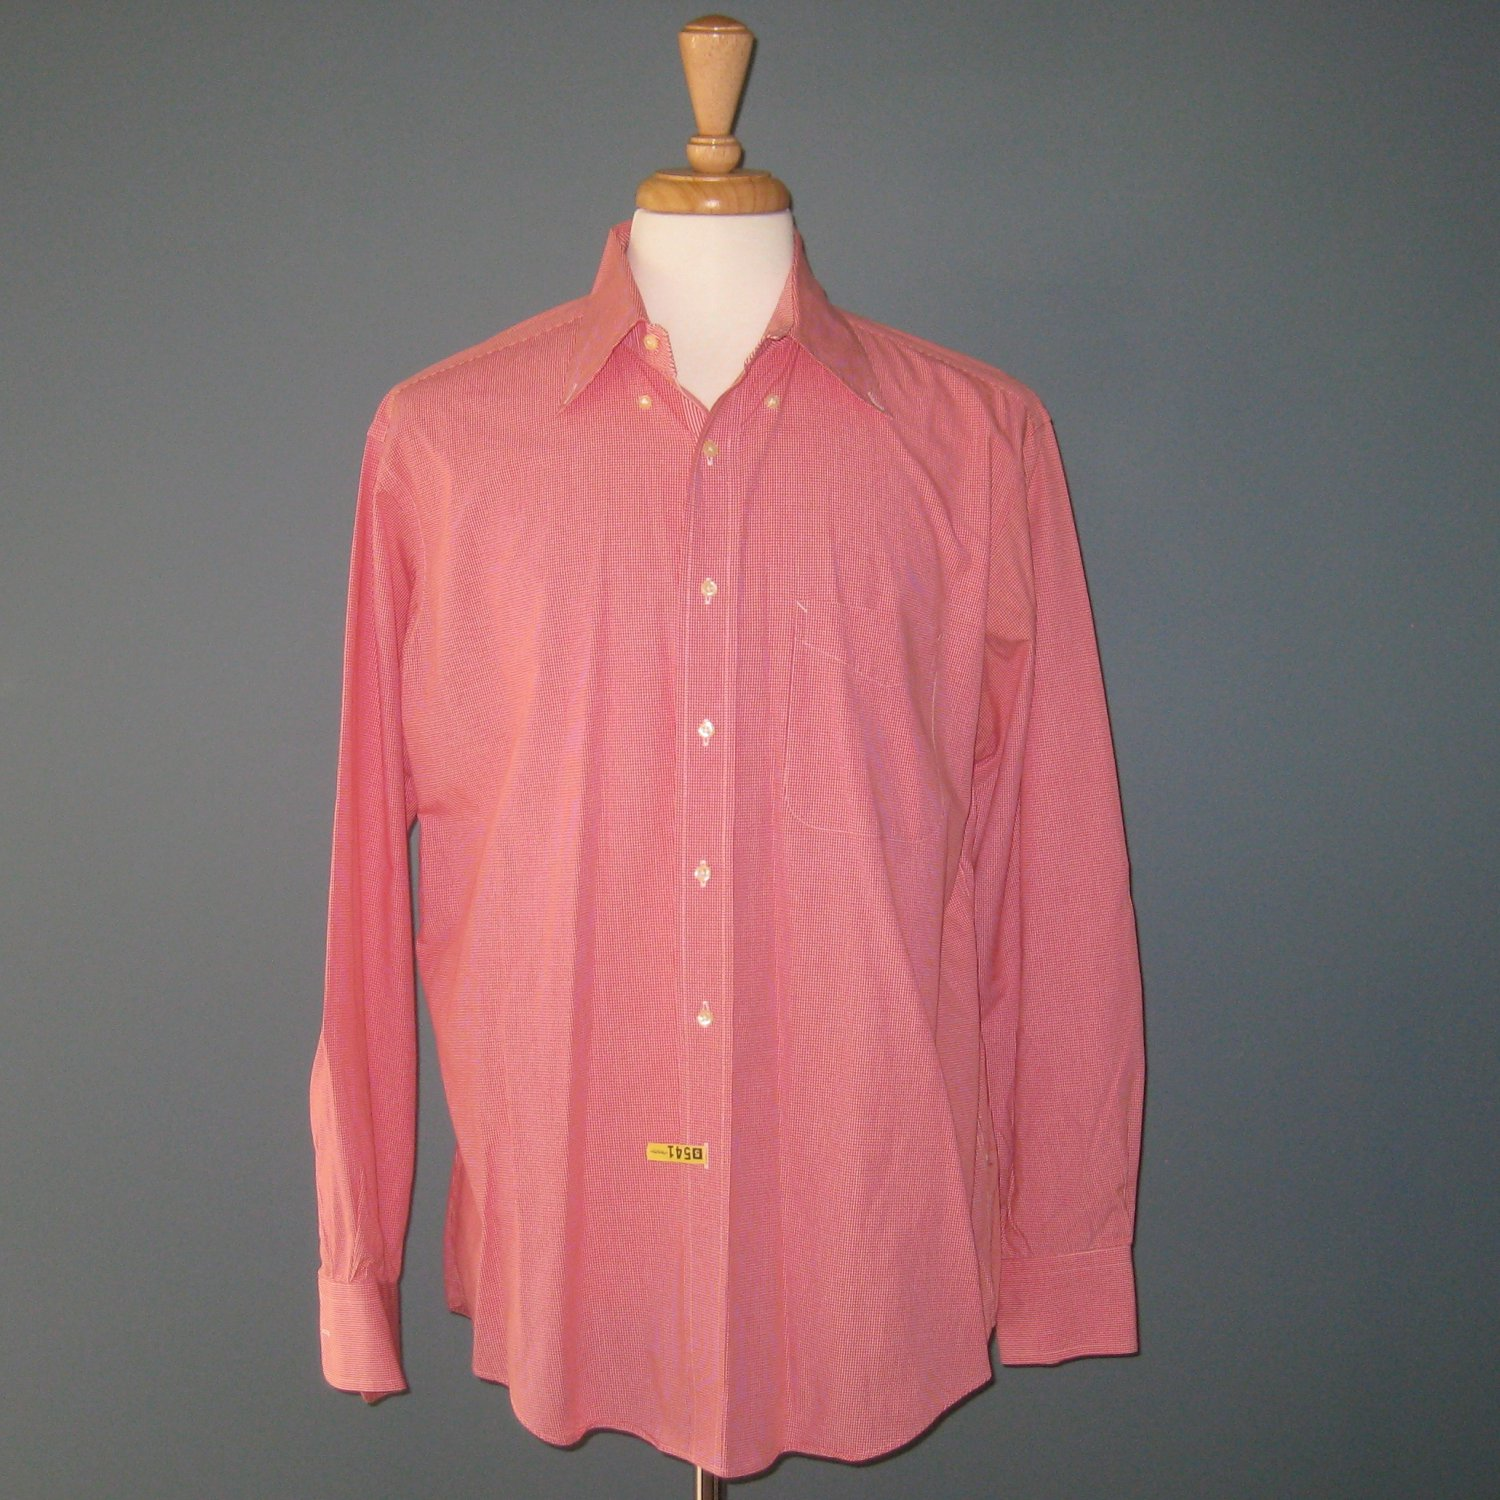 Pre-Owned Tommy Hilfiger Men's 100% Cotton Red Mini Check L/S Dress Shirt - 16 34/35